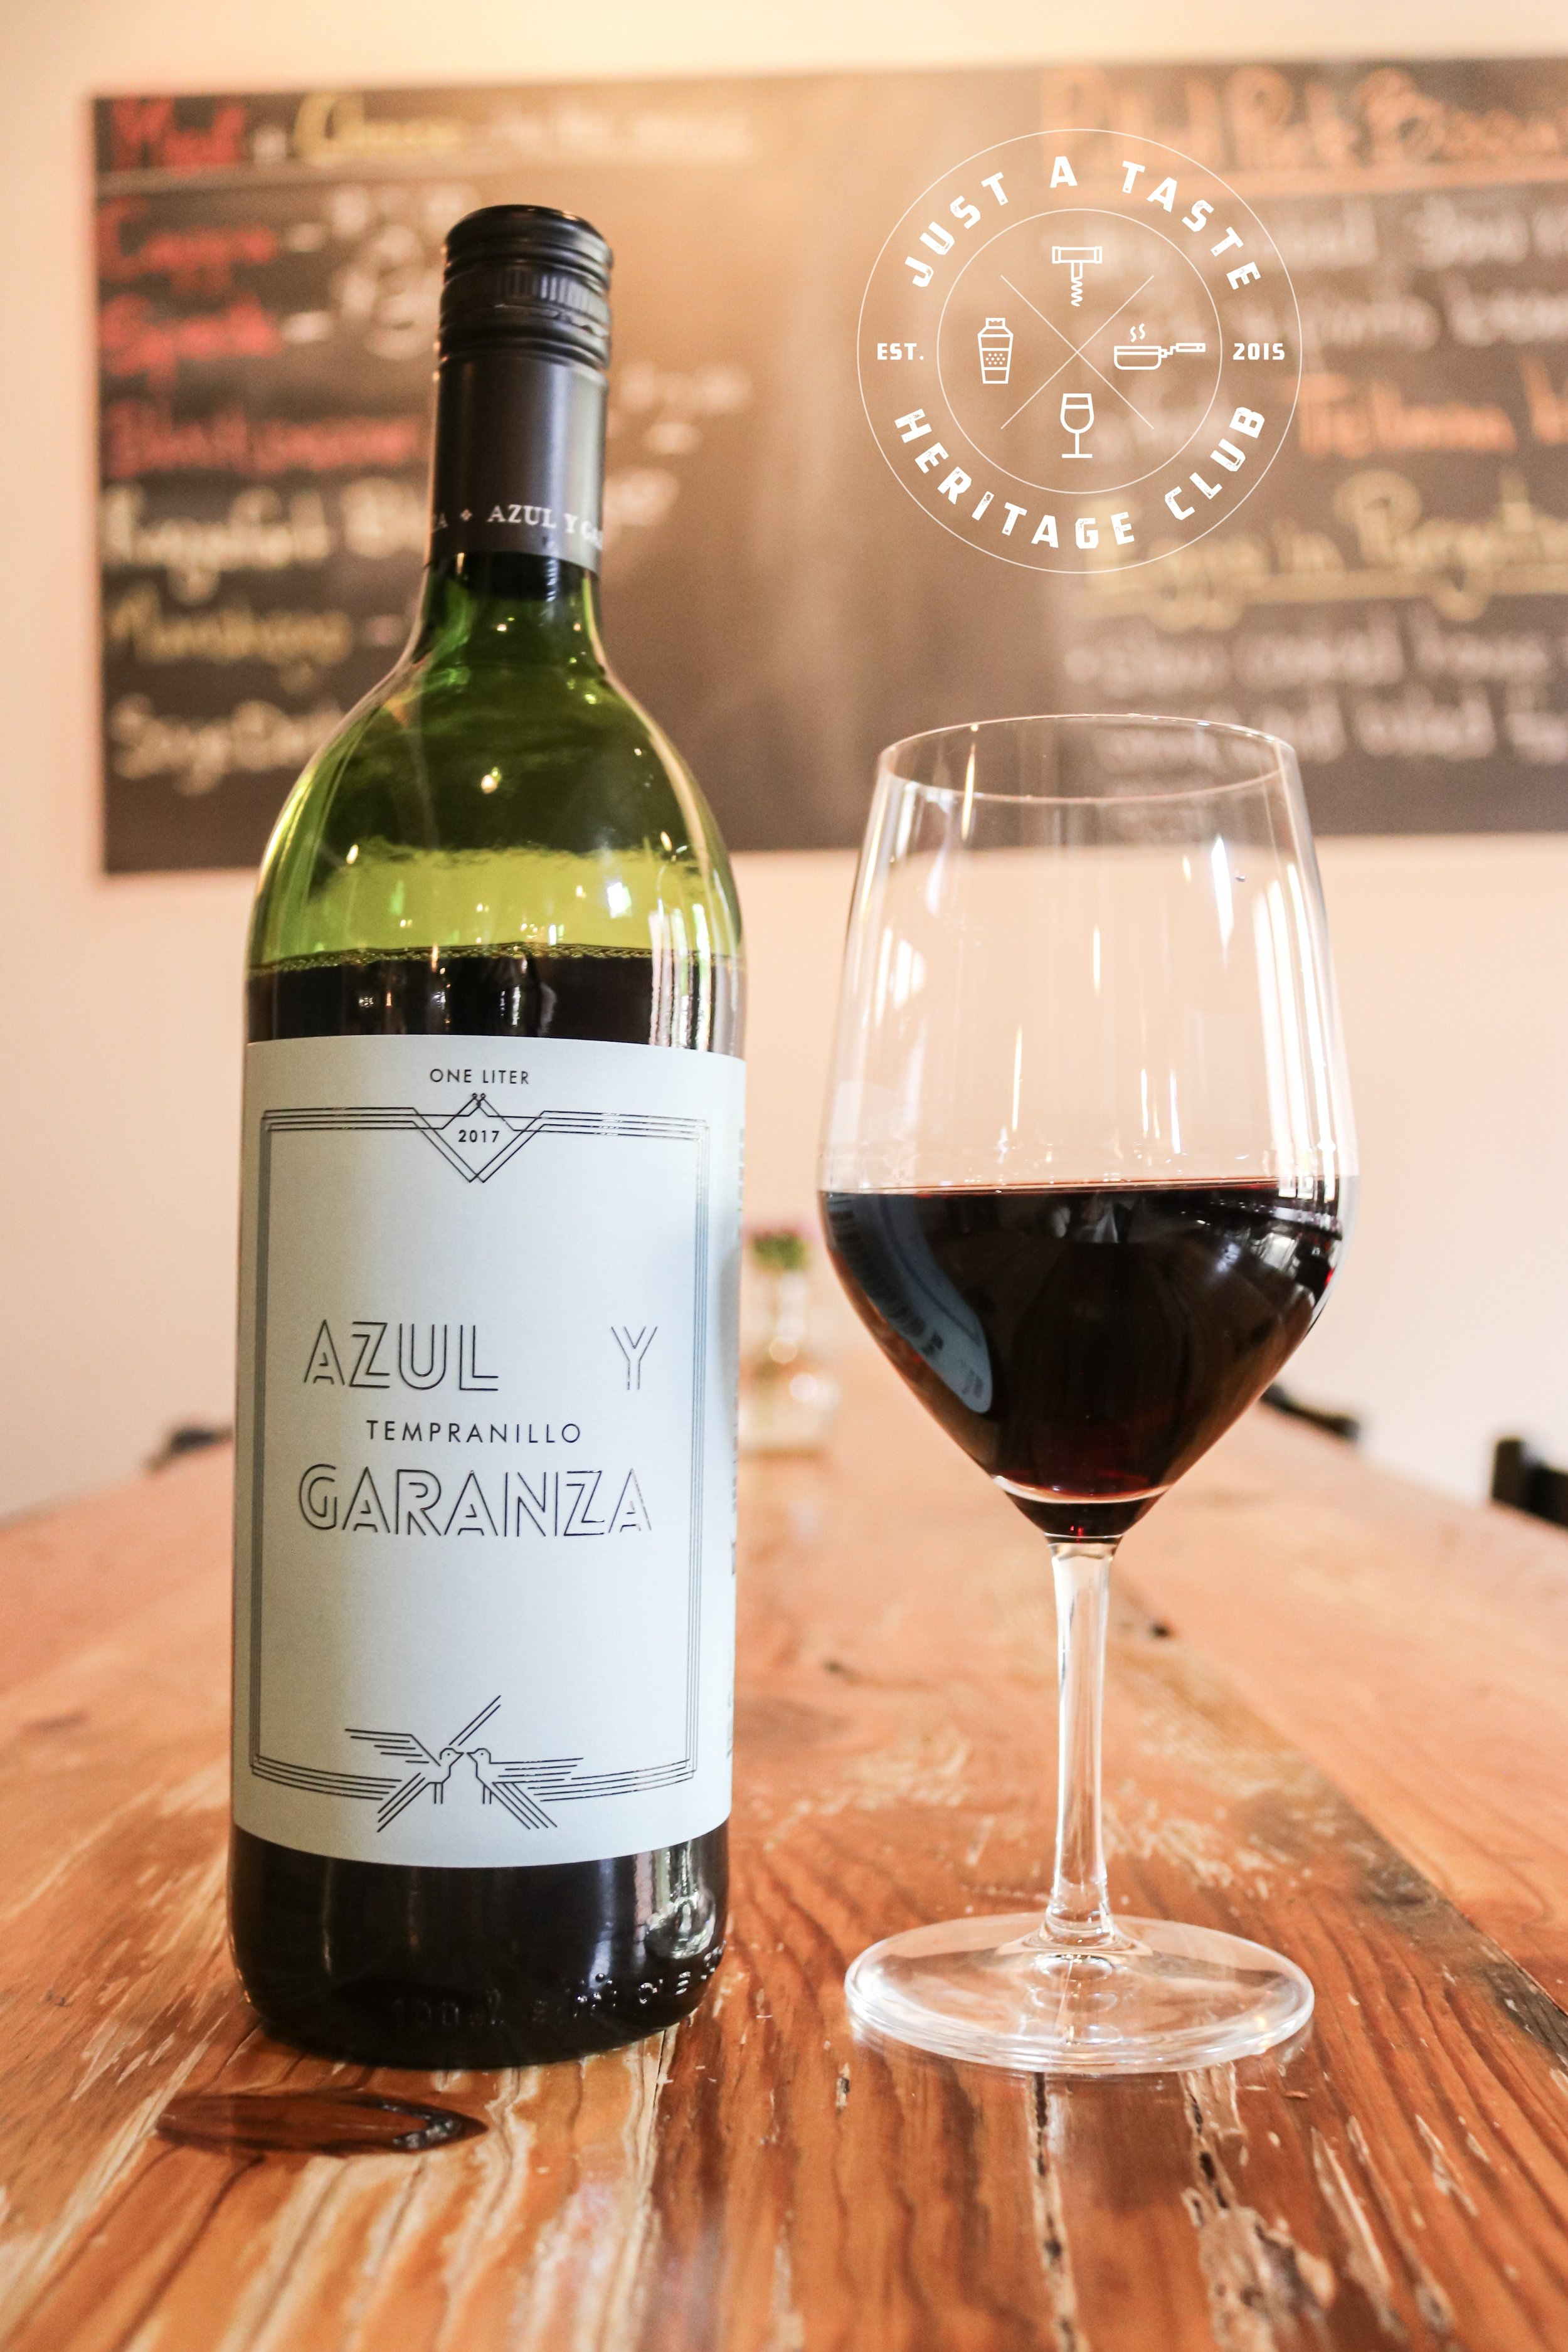 Azul Y Garanza Tempranillo from Valkyrie Selections, our featured Heritage Wine Club red at Just A Taste.